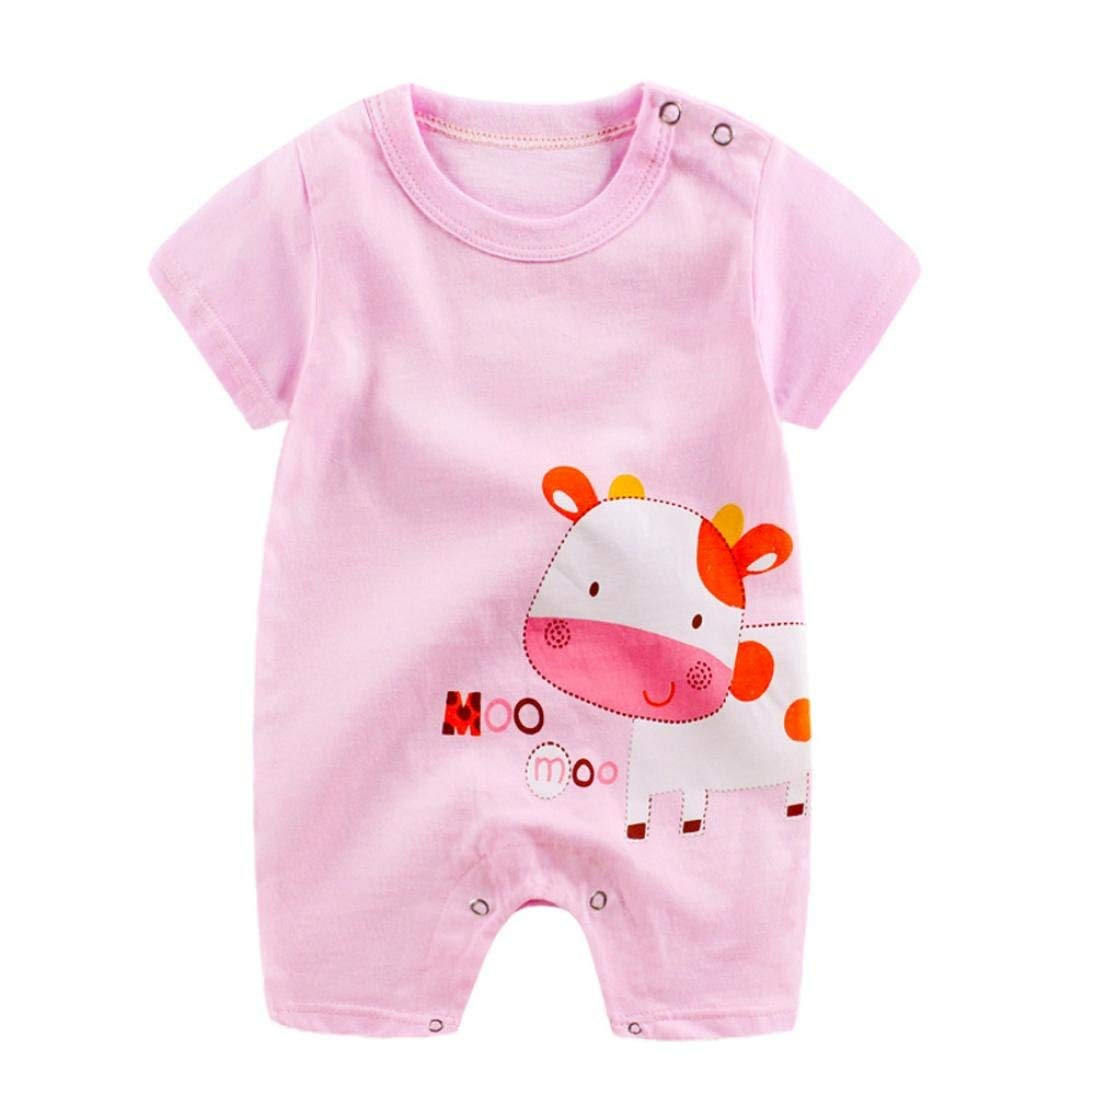 820ab6514 Get Quotations · Fabal Baby Girls Clothing Cute Cartoon Short Sleeve  Newborn Romper Blanket Sleepers Baby Girl Clothes